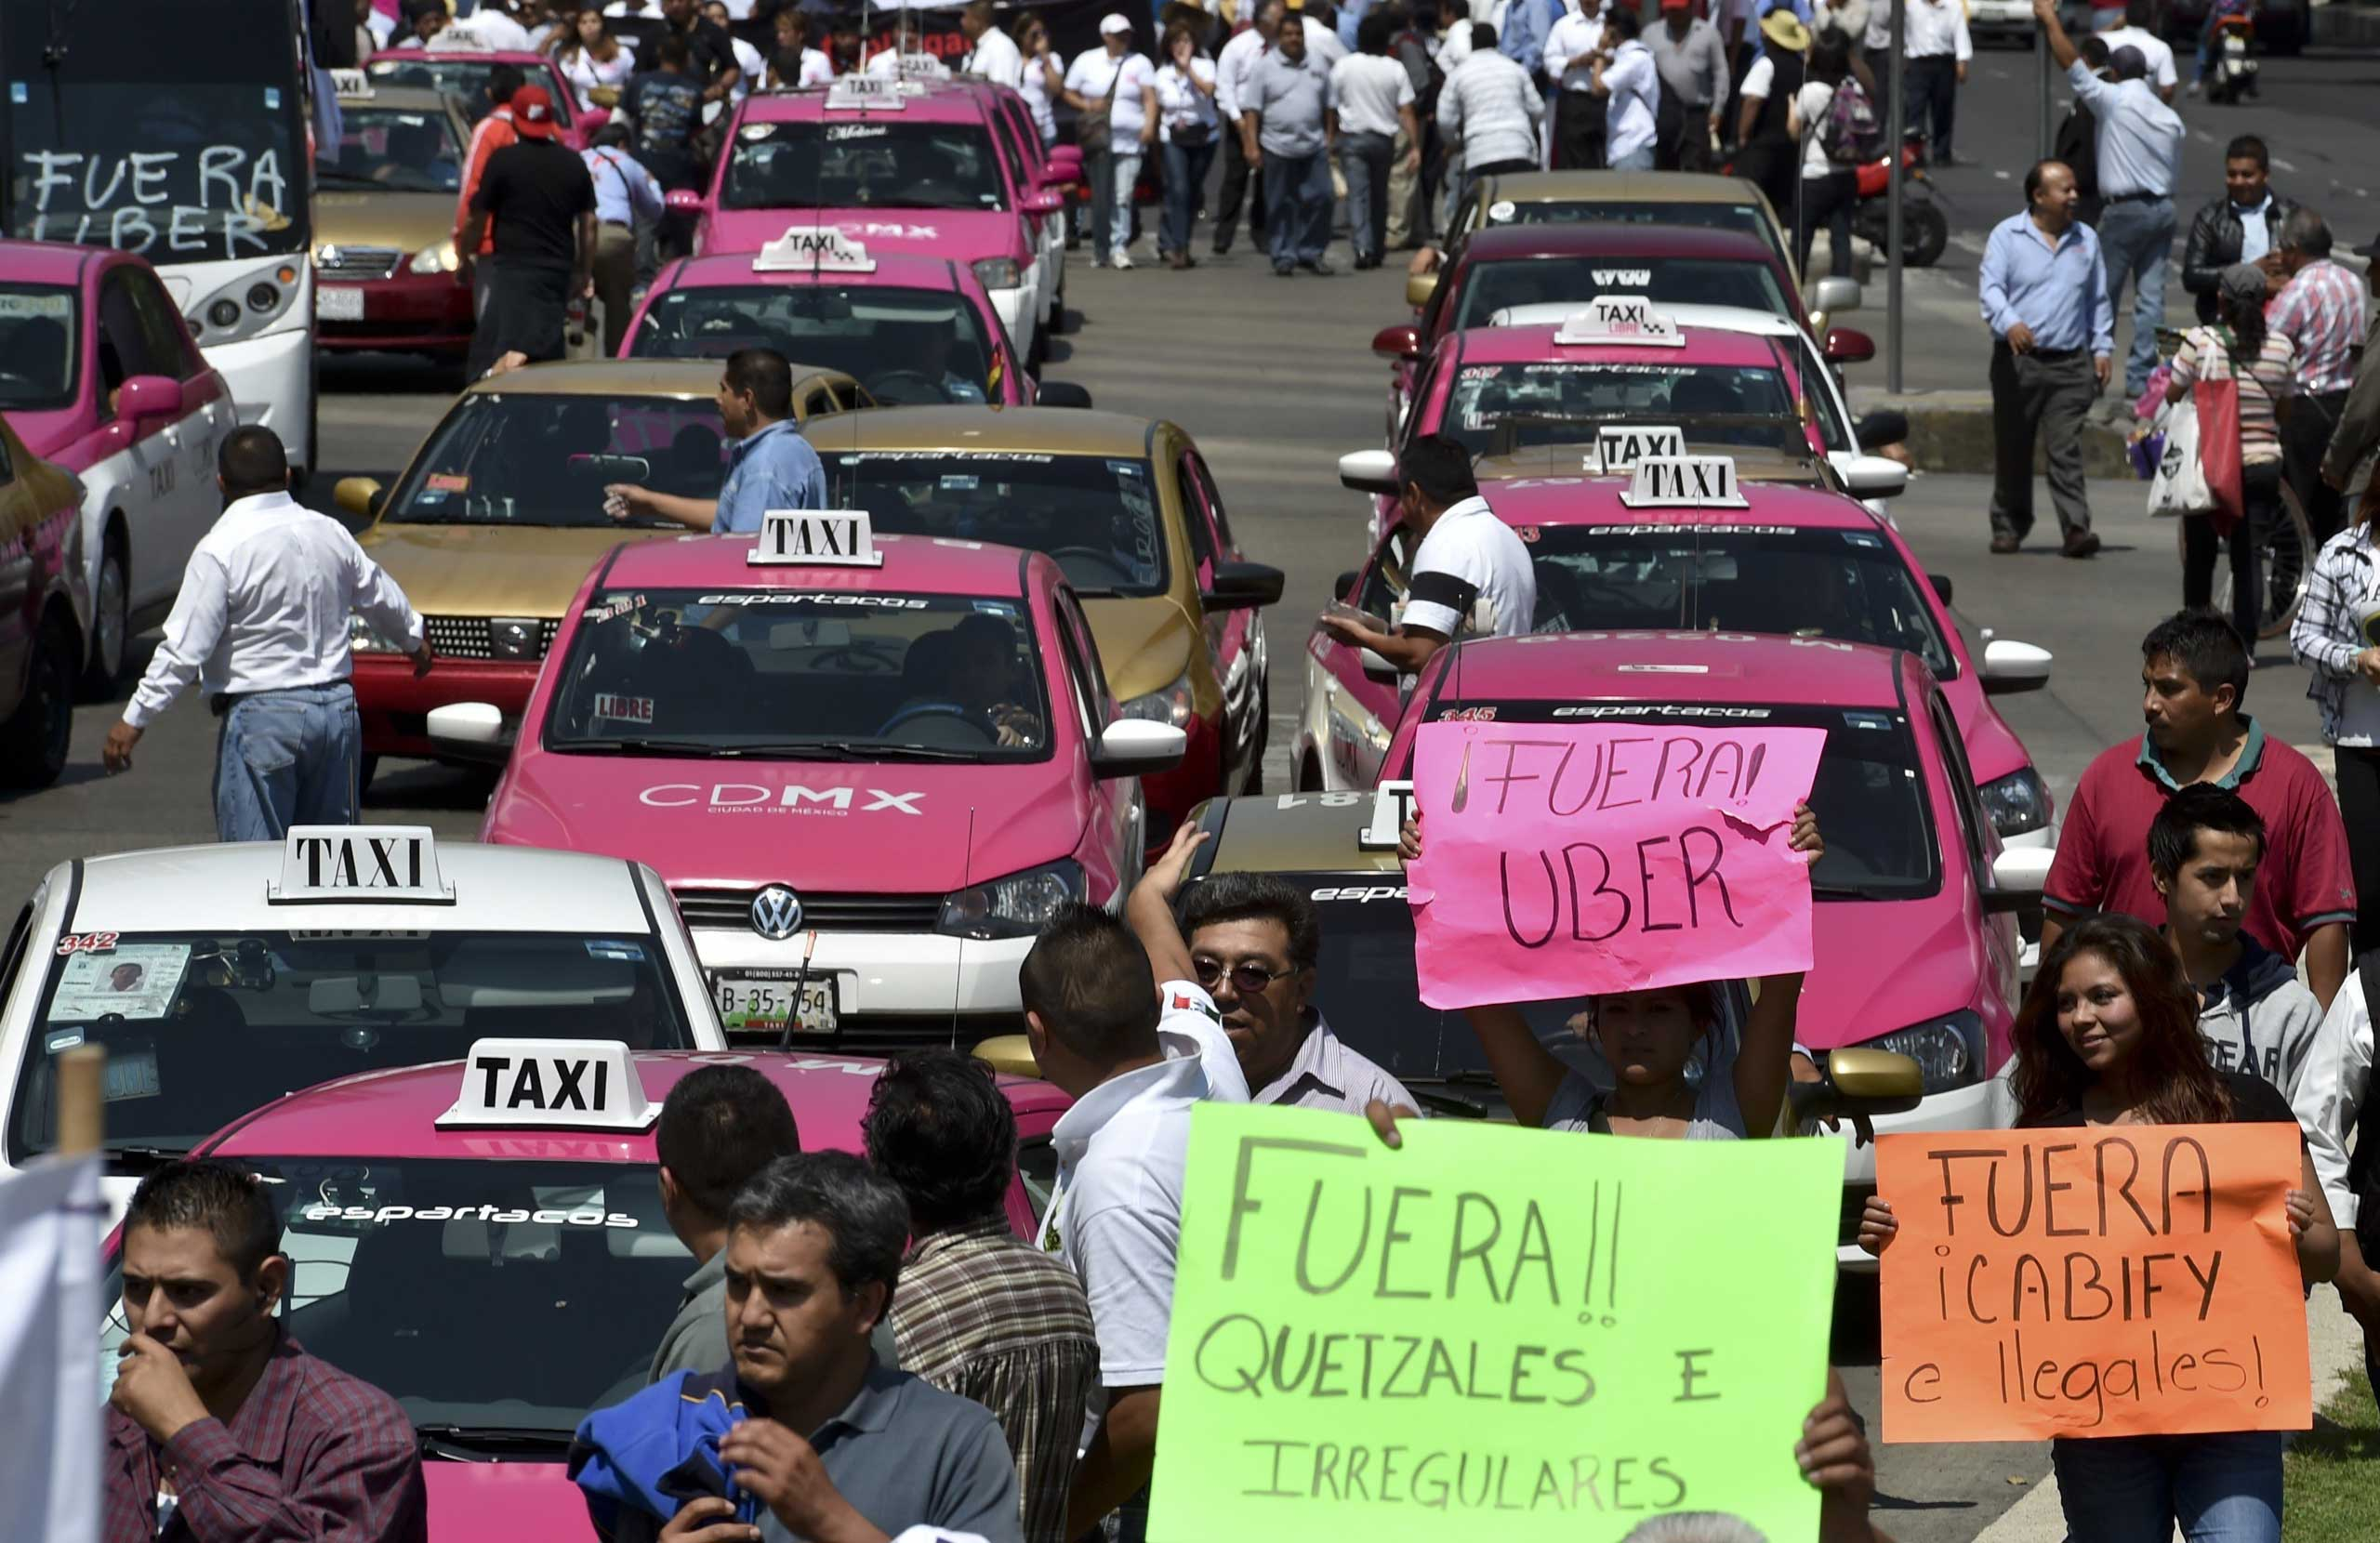 Taxi drivers take part in a protest against the private taxi company Uber for alleged unfair competition, in Mexico City on May 25, 2015.